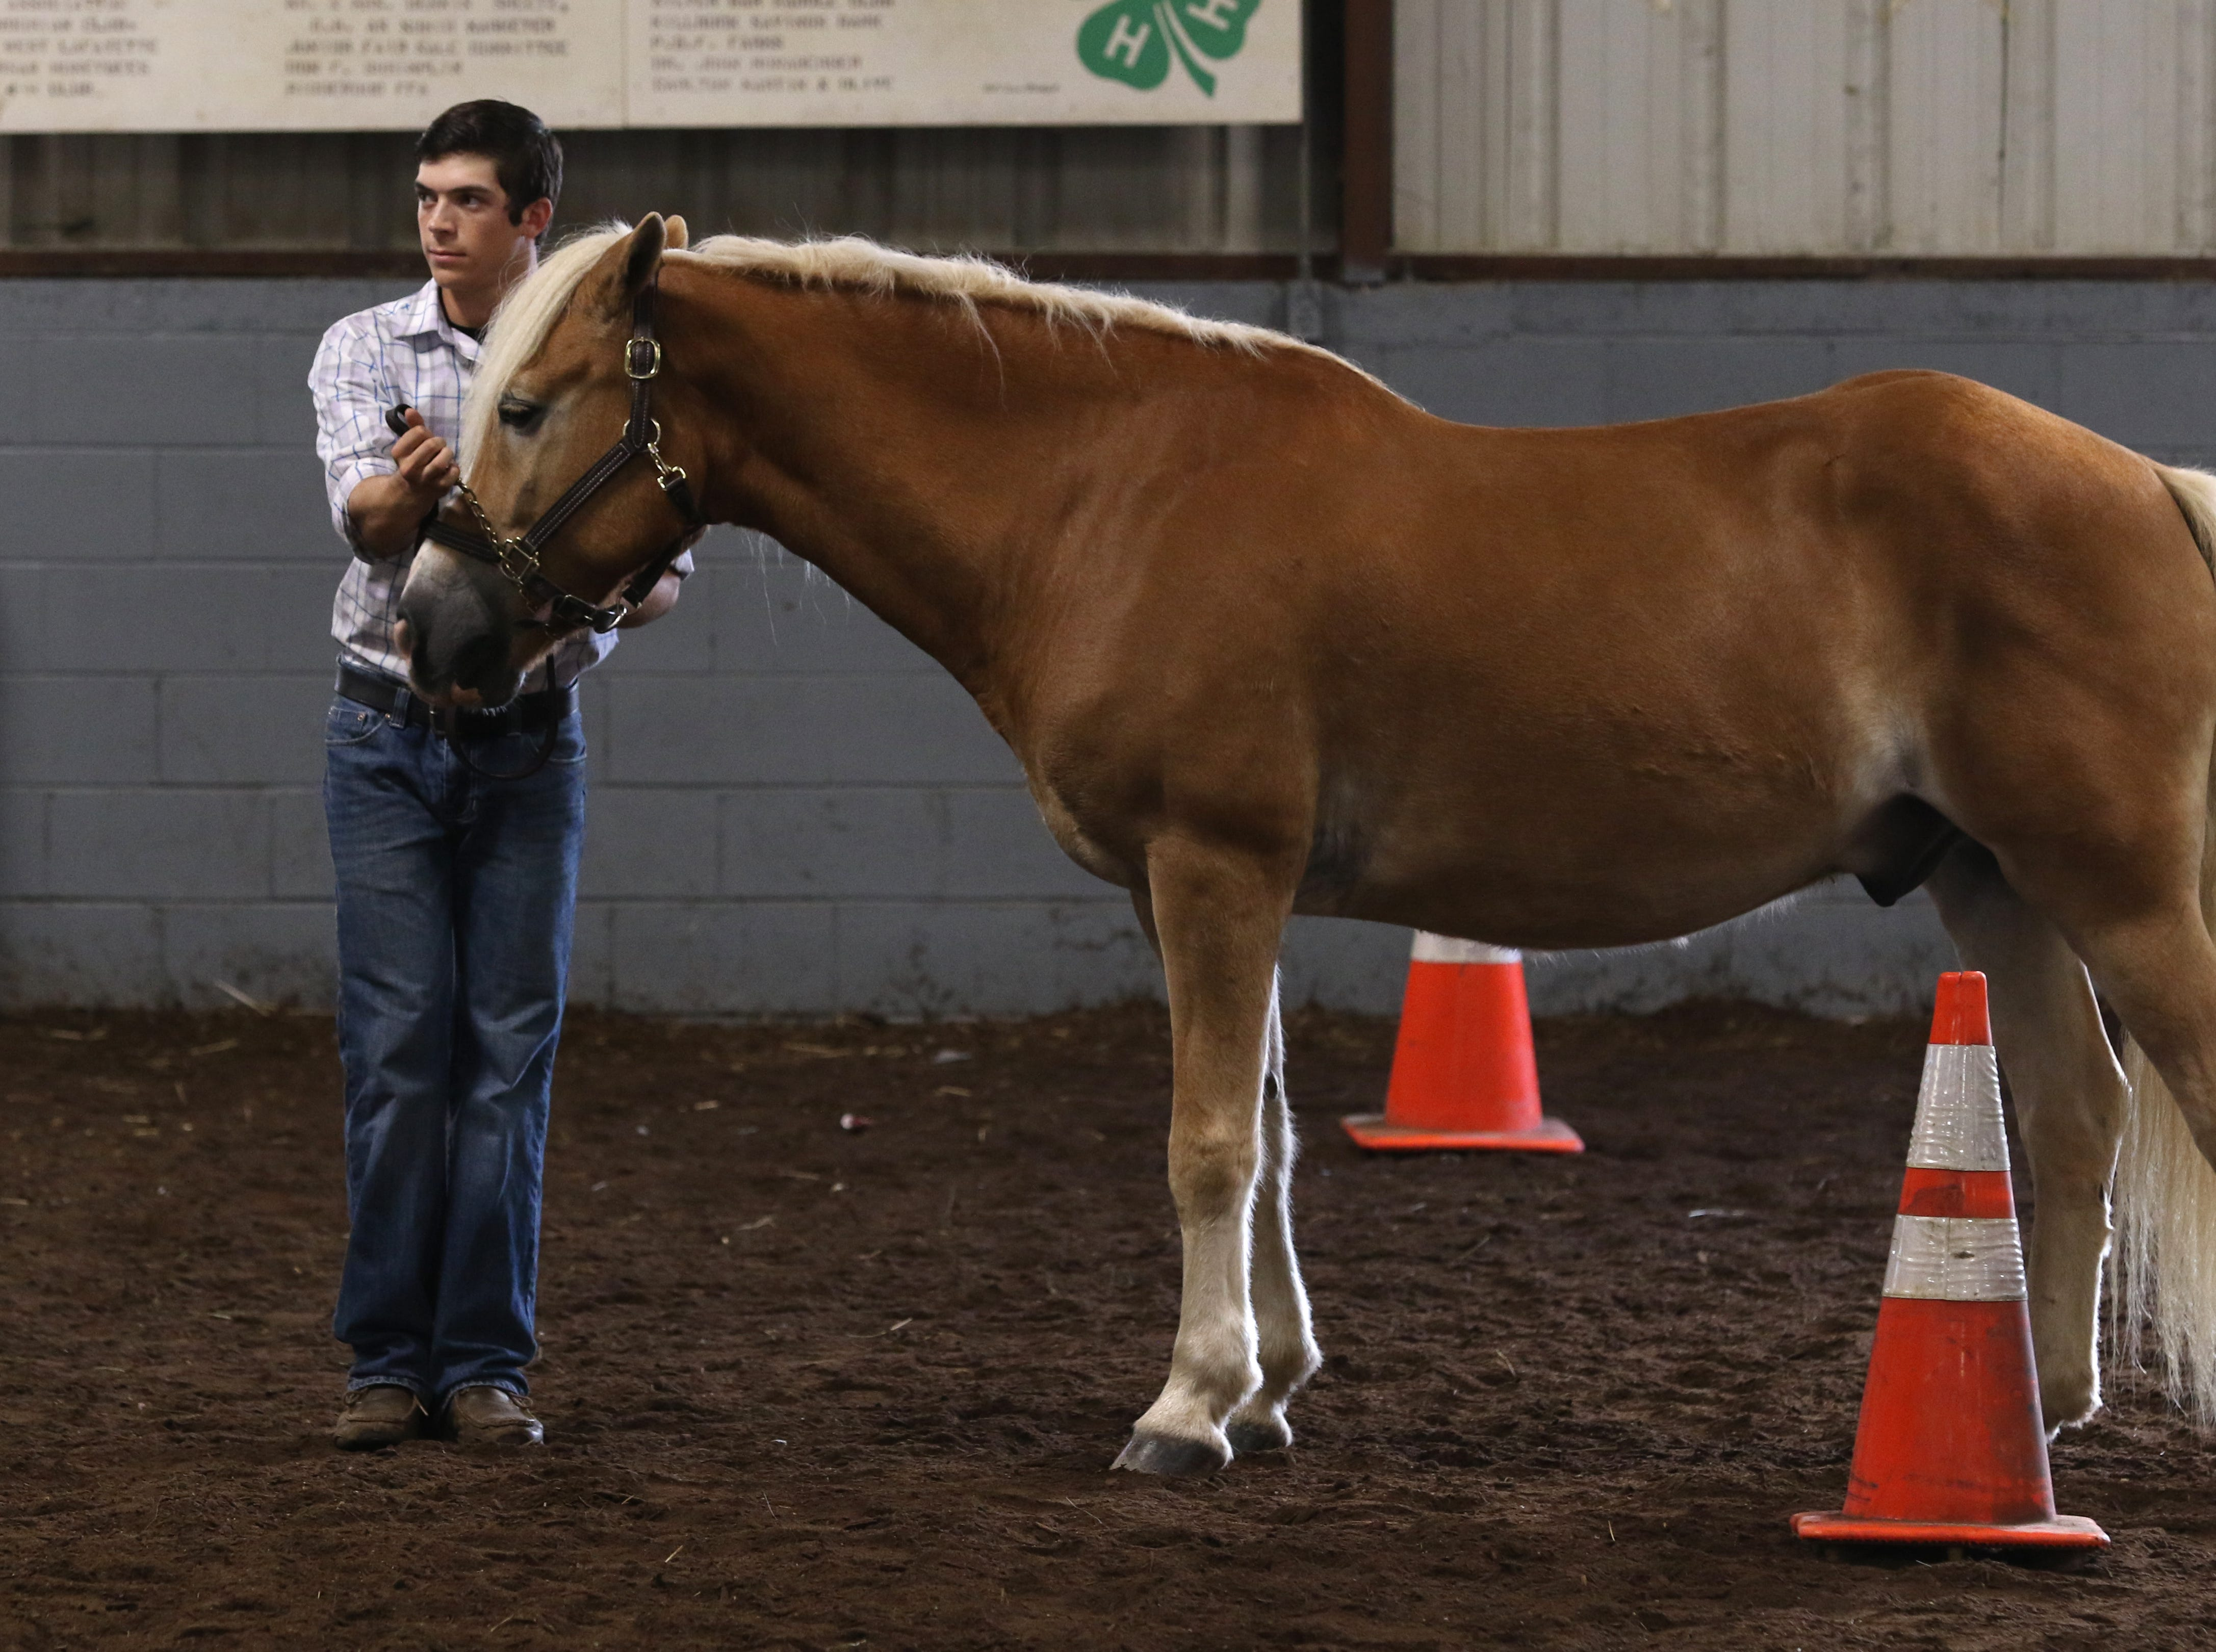 Justin Mason shows a horse during the Showman of Showmen at the Coshocton County Fair on Wednesday.